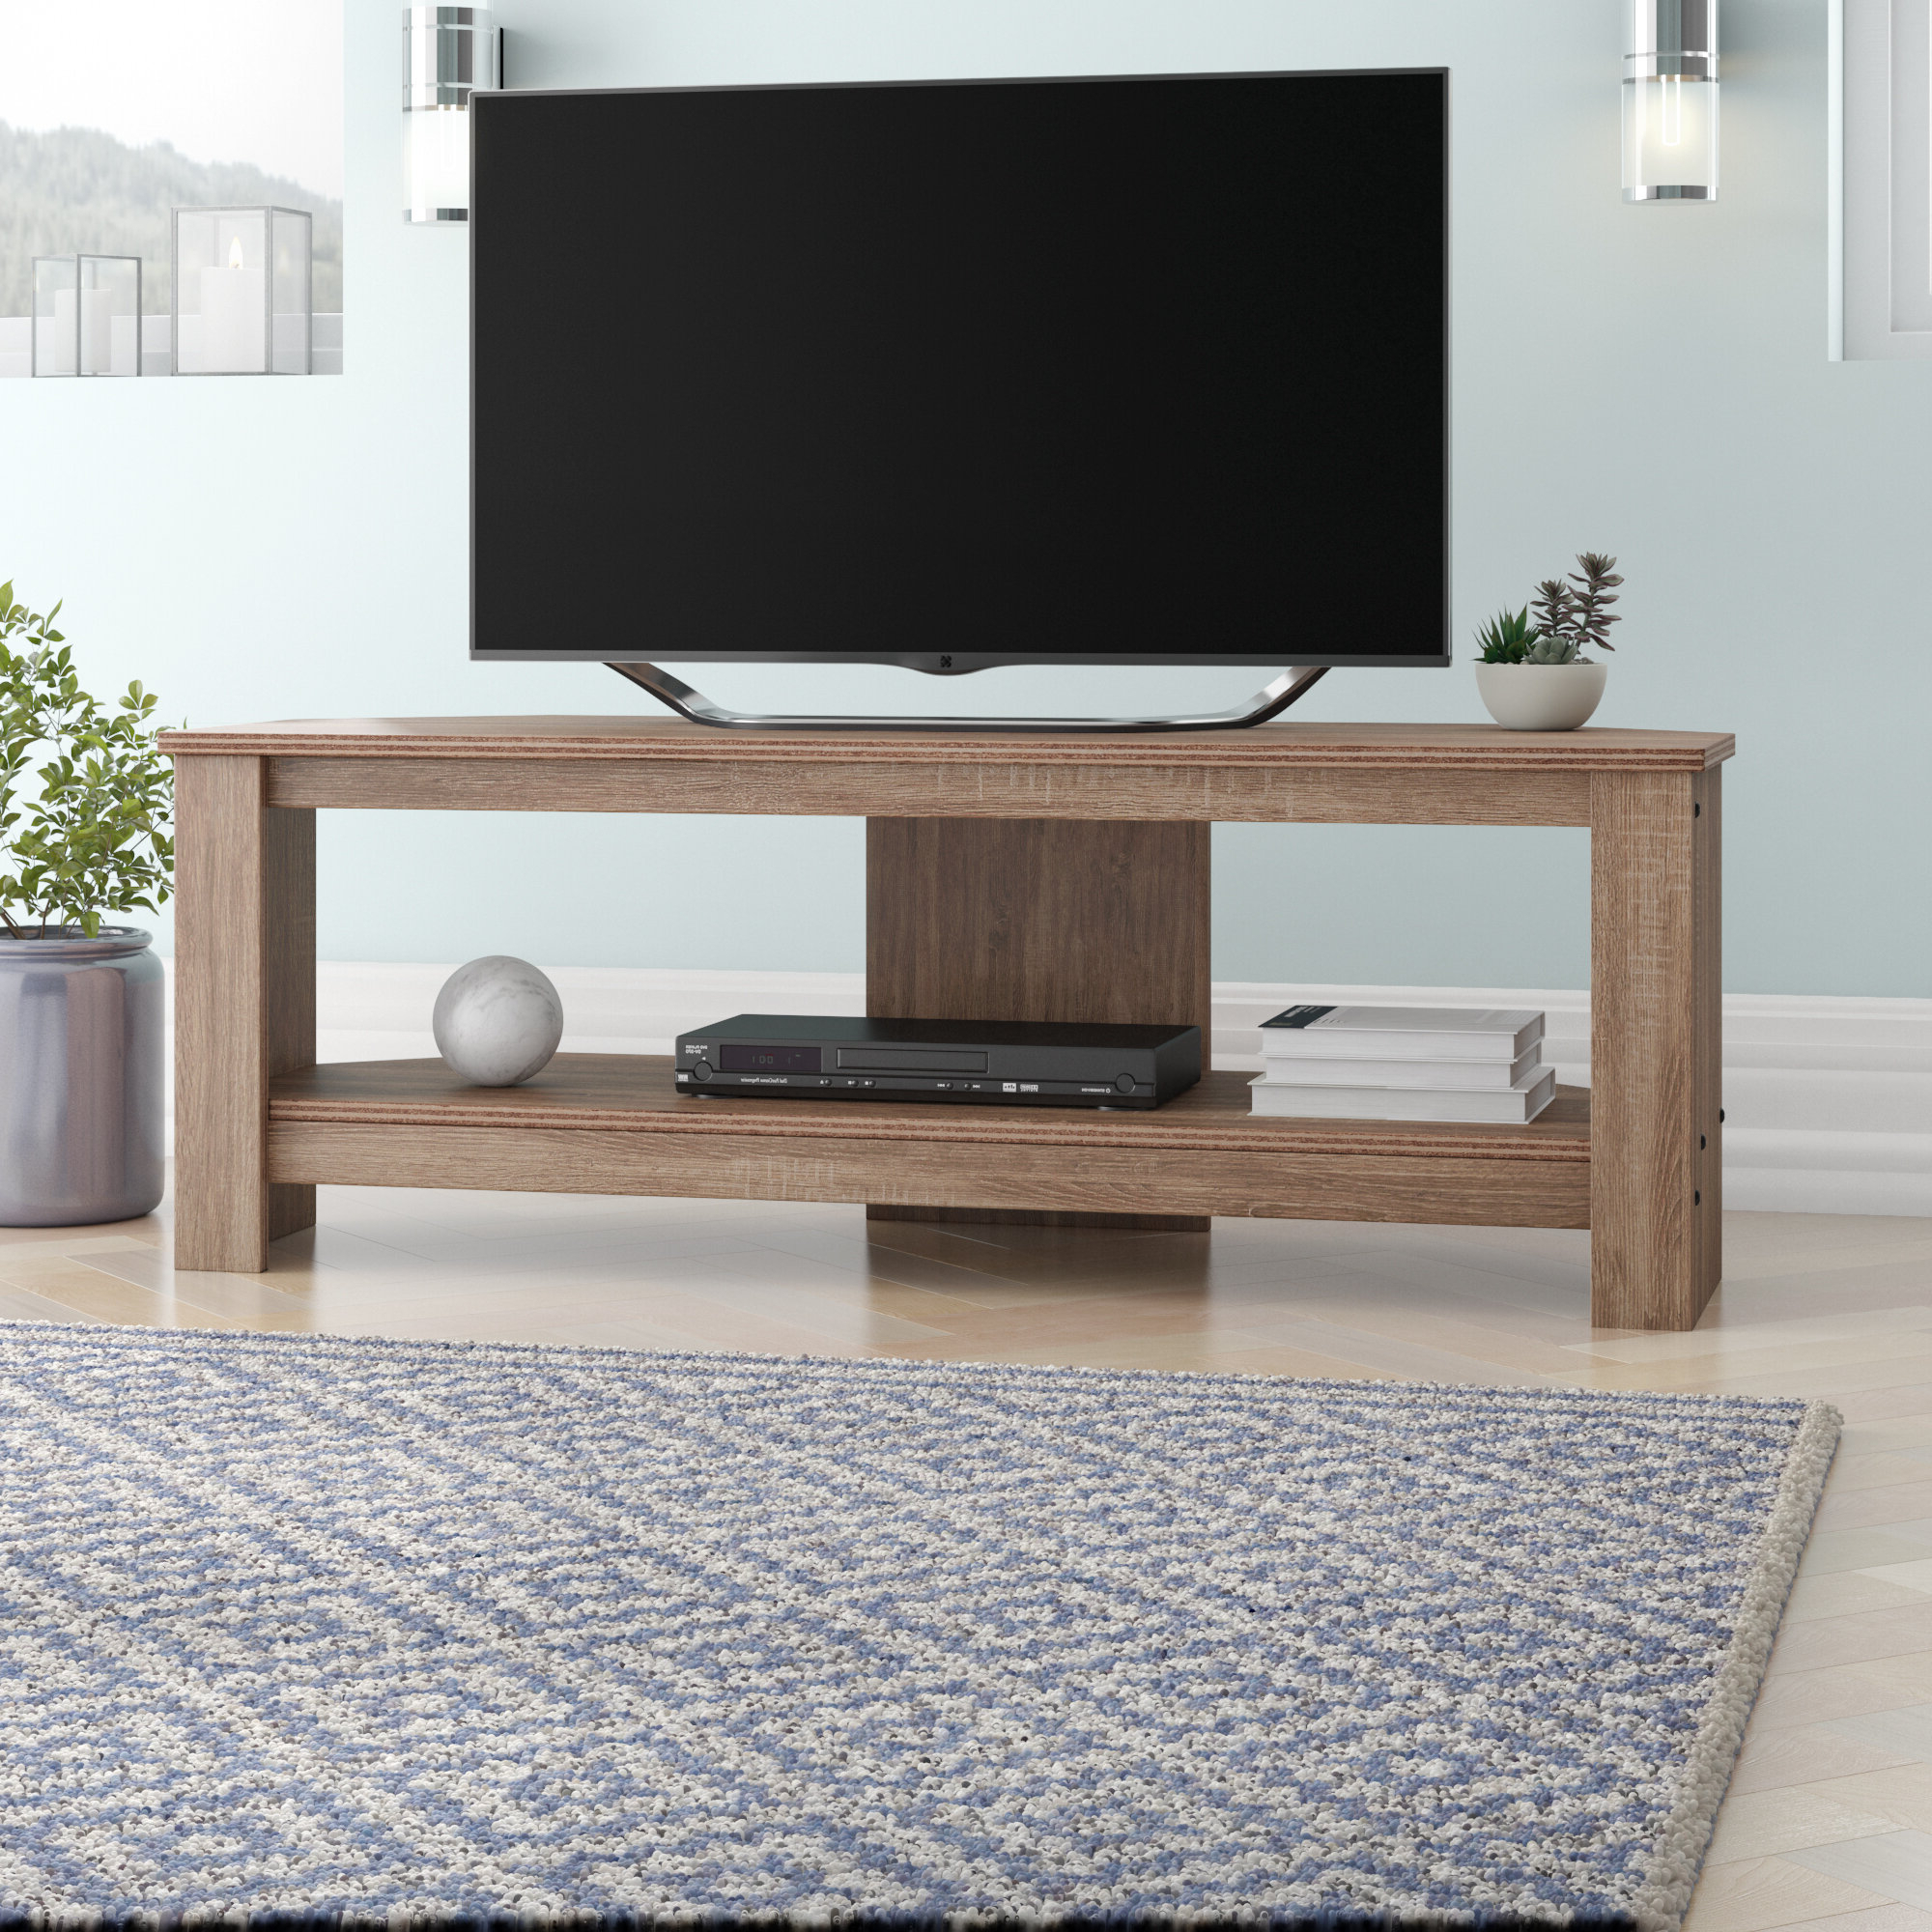 Corner Tv Stands For 46 Inch Flat Screen With Regard To 2018 Corner Tv Stands You'll Love (View 17 of 20)